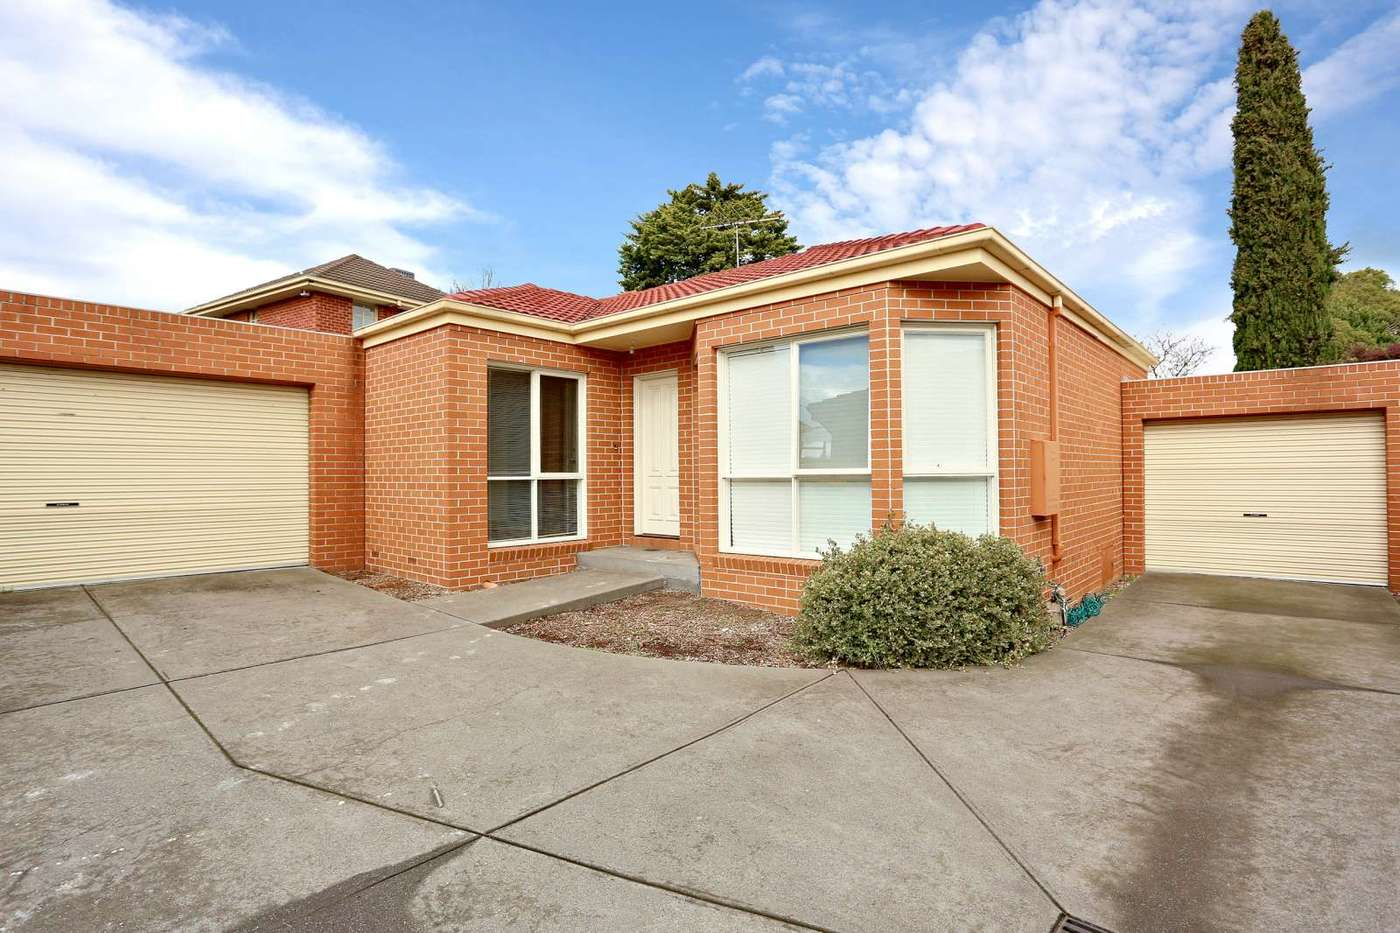 Main view of Homely unit listing, 2/534 Waverley Rd, Mount Waverley, VIC 3149